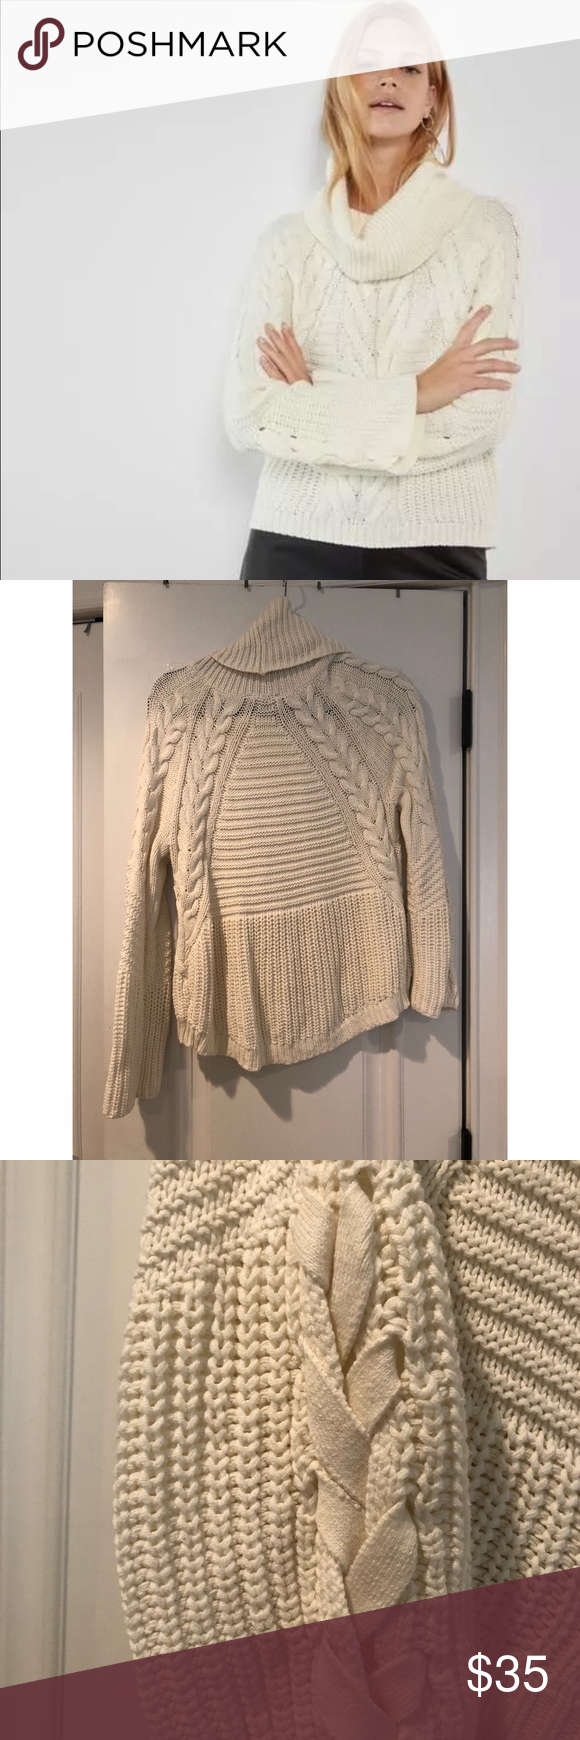 Express Cowl Neck Cable Knit Sweater Cable Knit Sweaters Sweaters Chunky Cable Knit Sweater